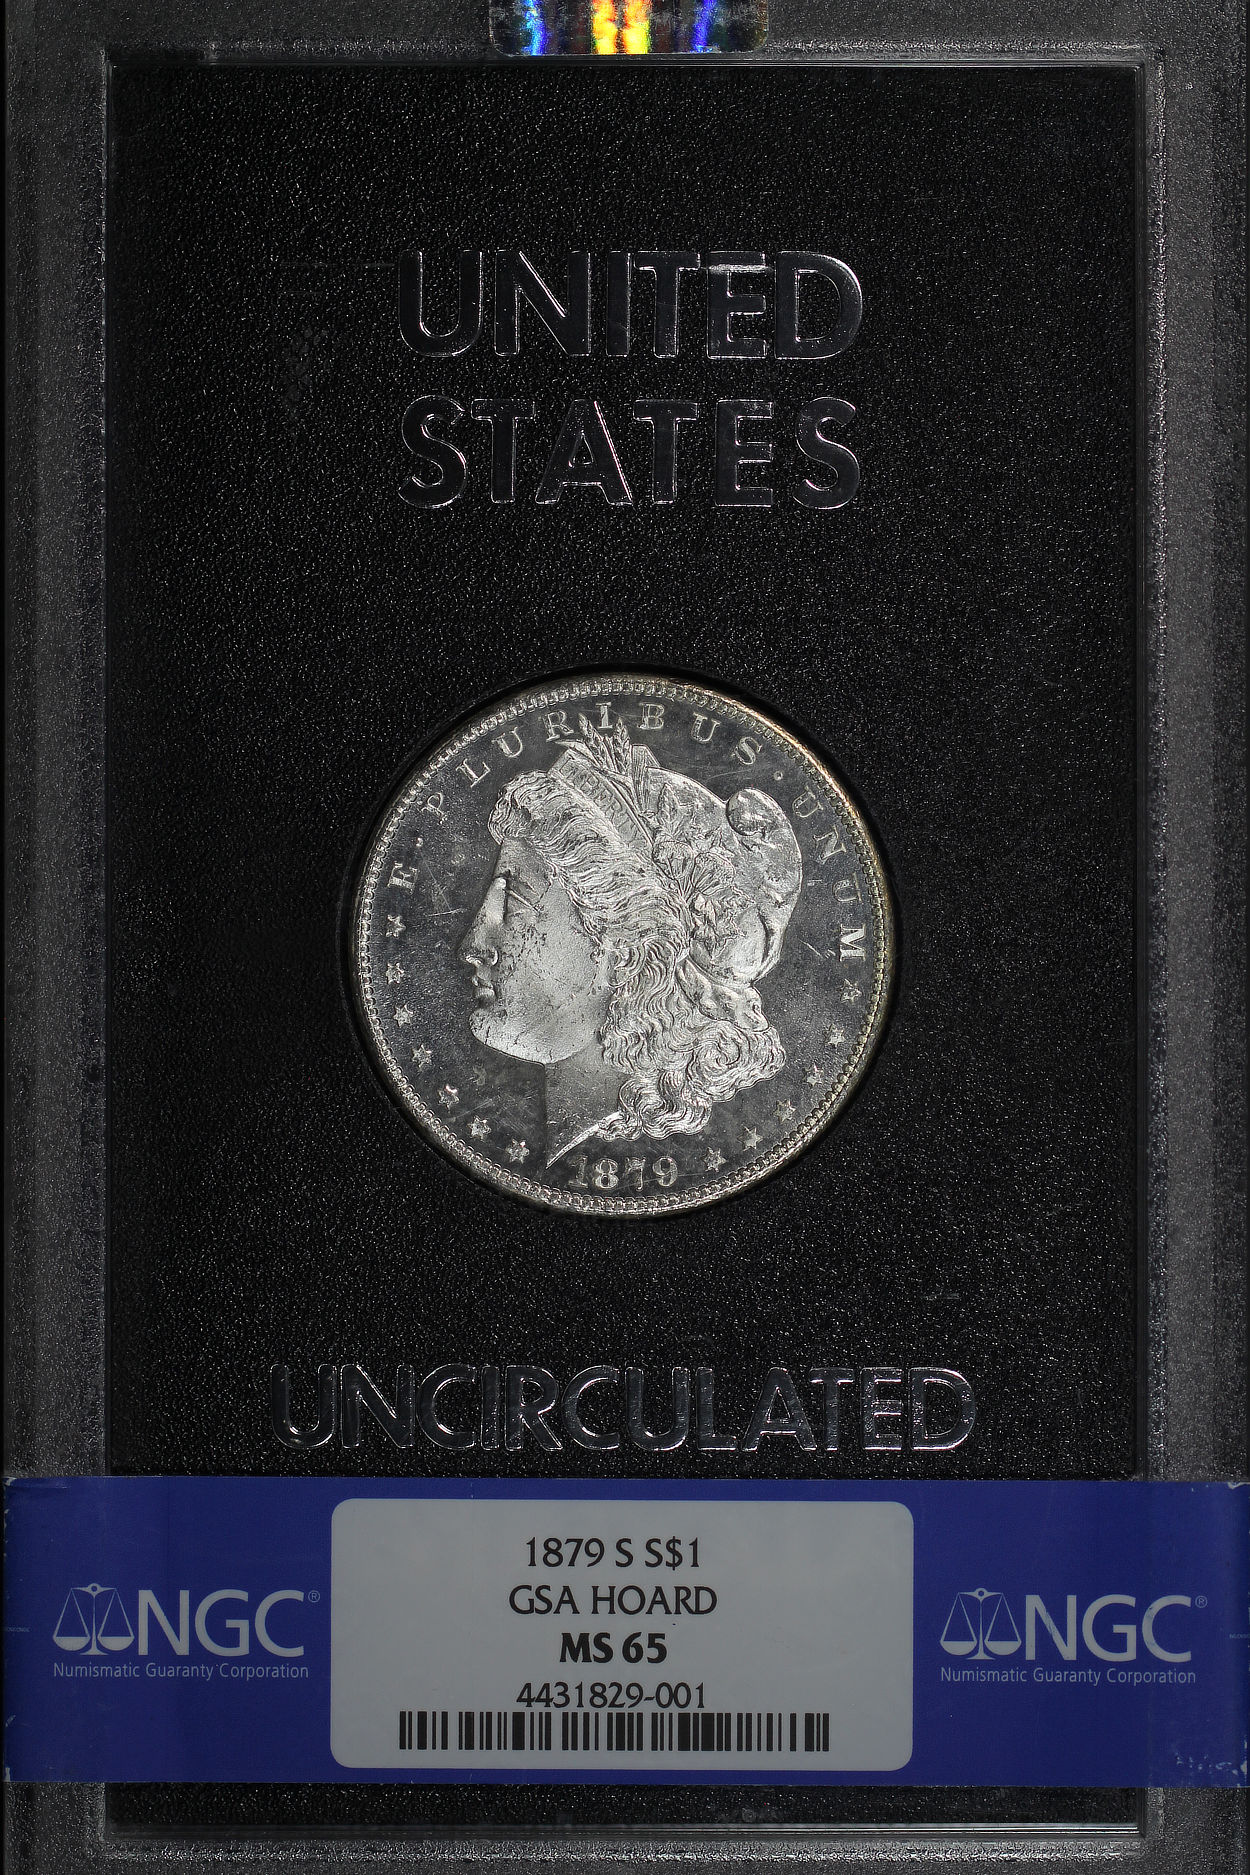 Obverse of 1879-S GSA Morgan Dollar NGC MS-65